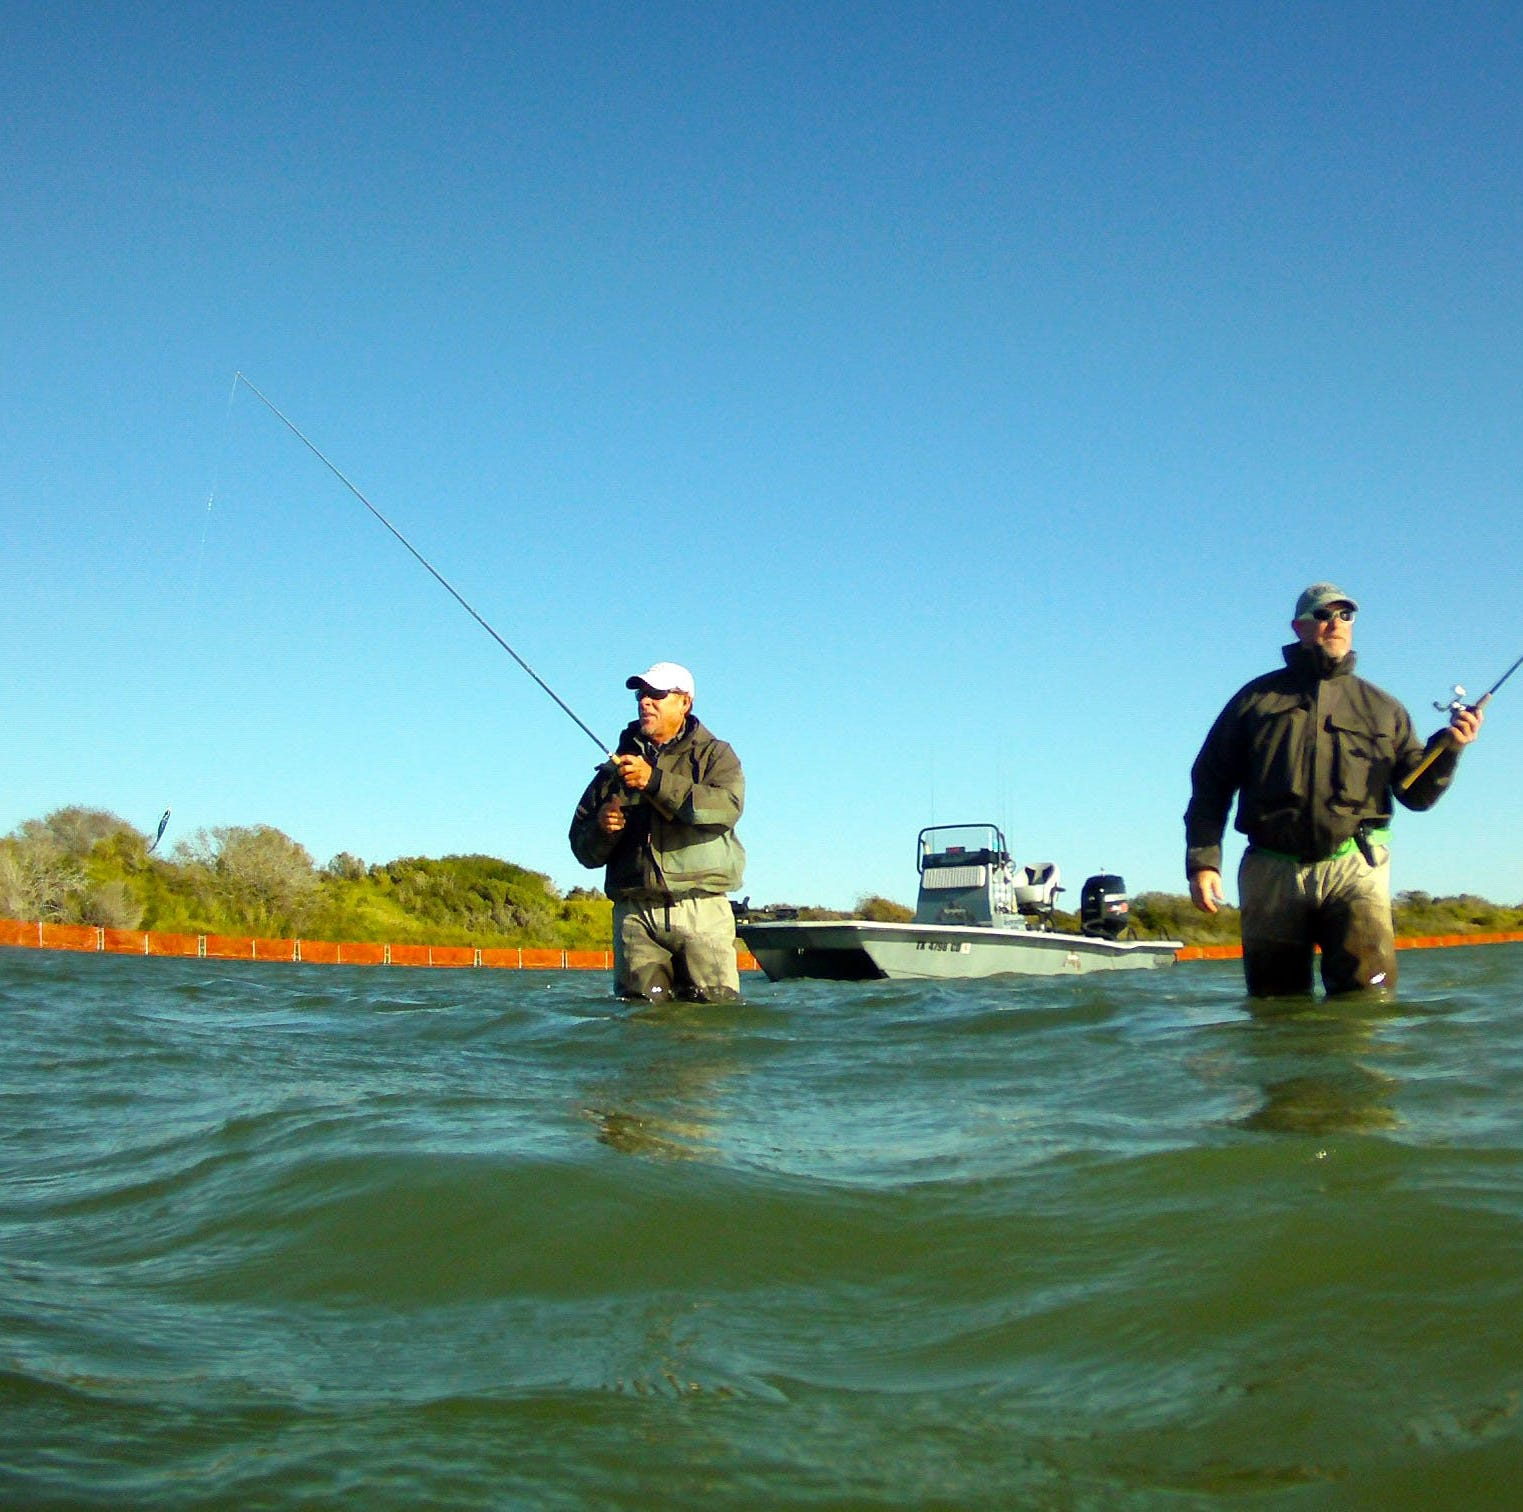 It is hardly ever too cold to go wade fishing in South Texas bays